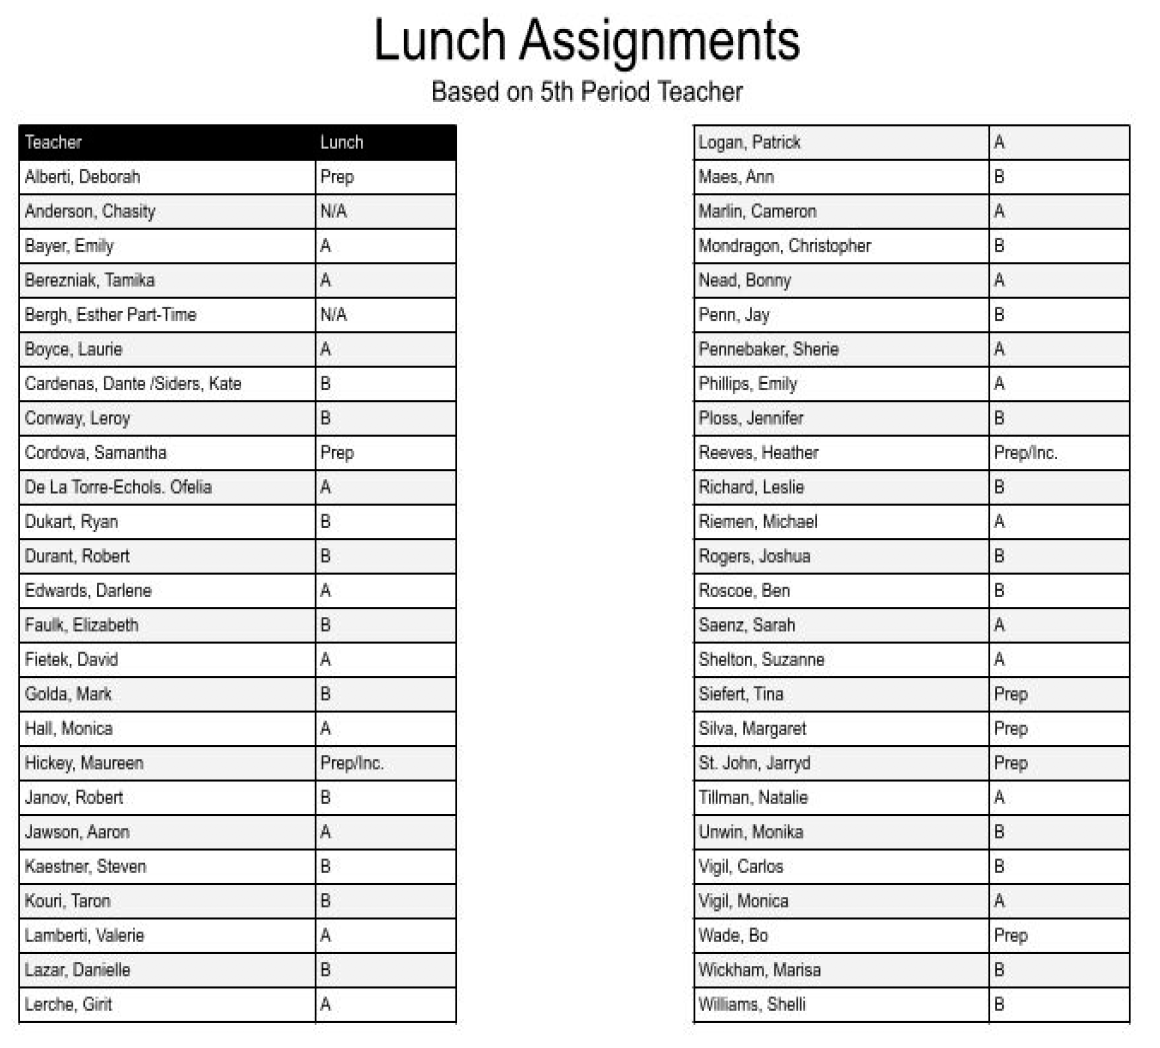 Lunch Assignments